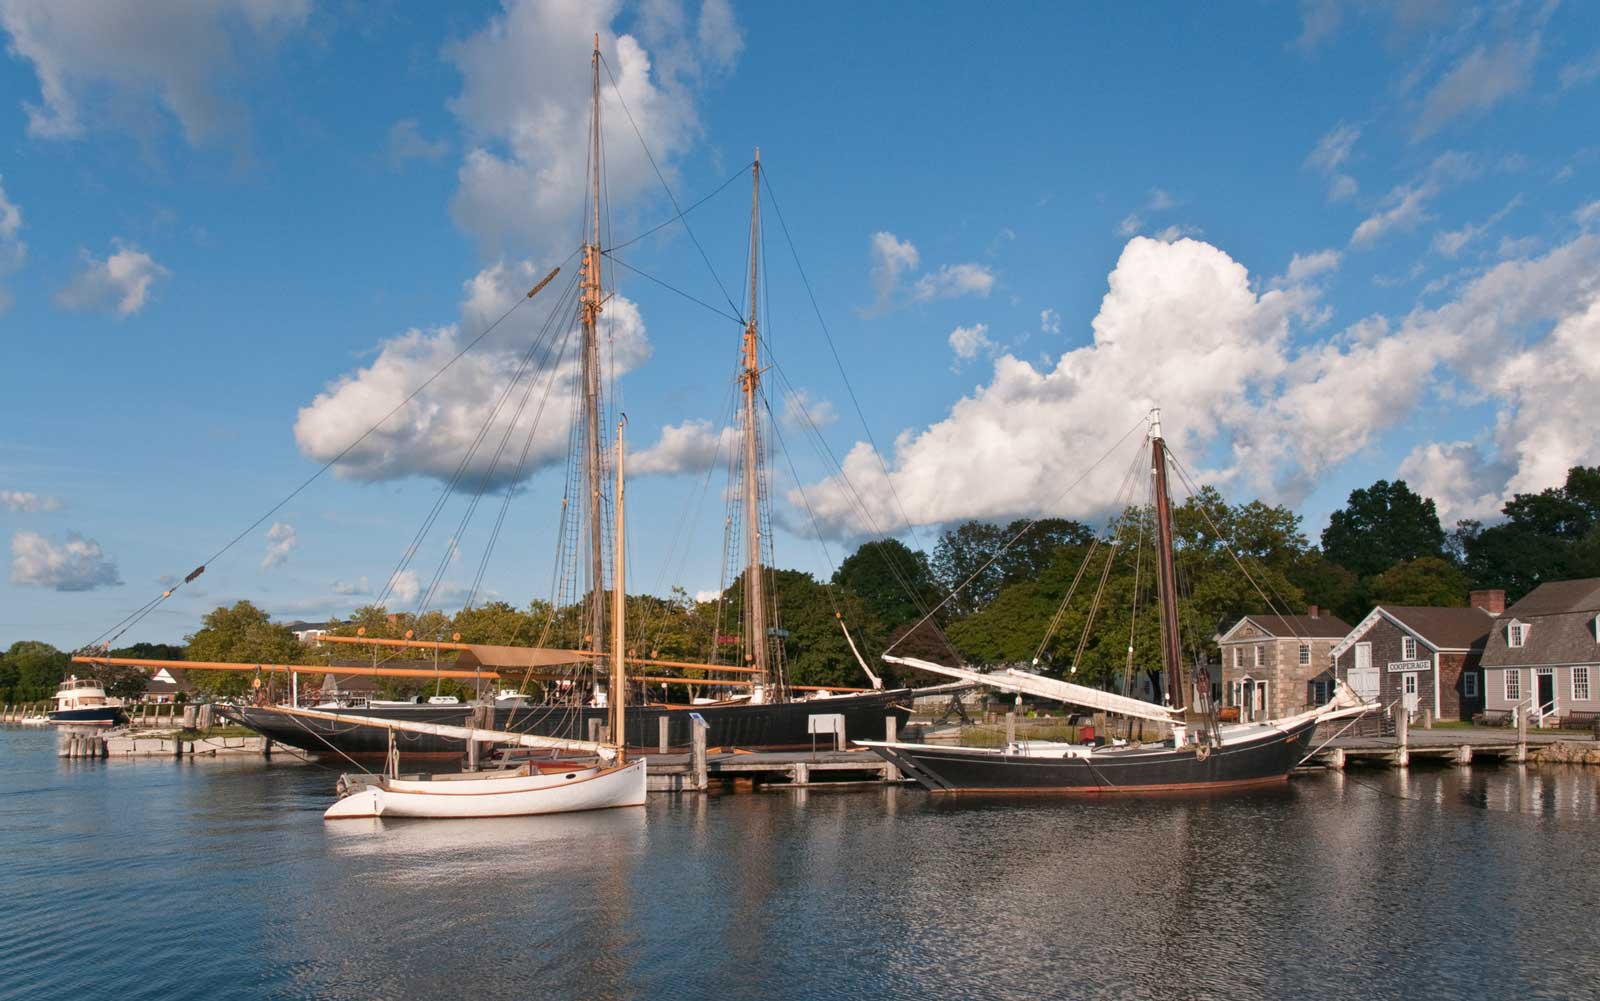 Middle Wharf historic sailing vessels at Mystic Seaport.